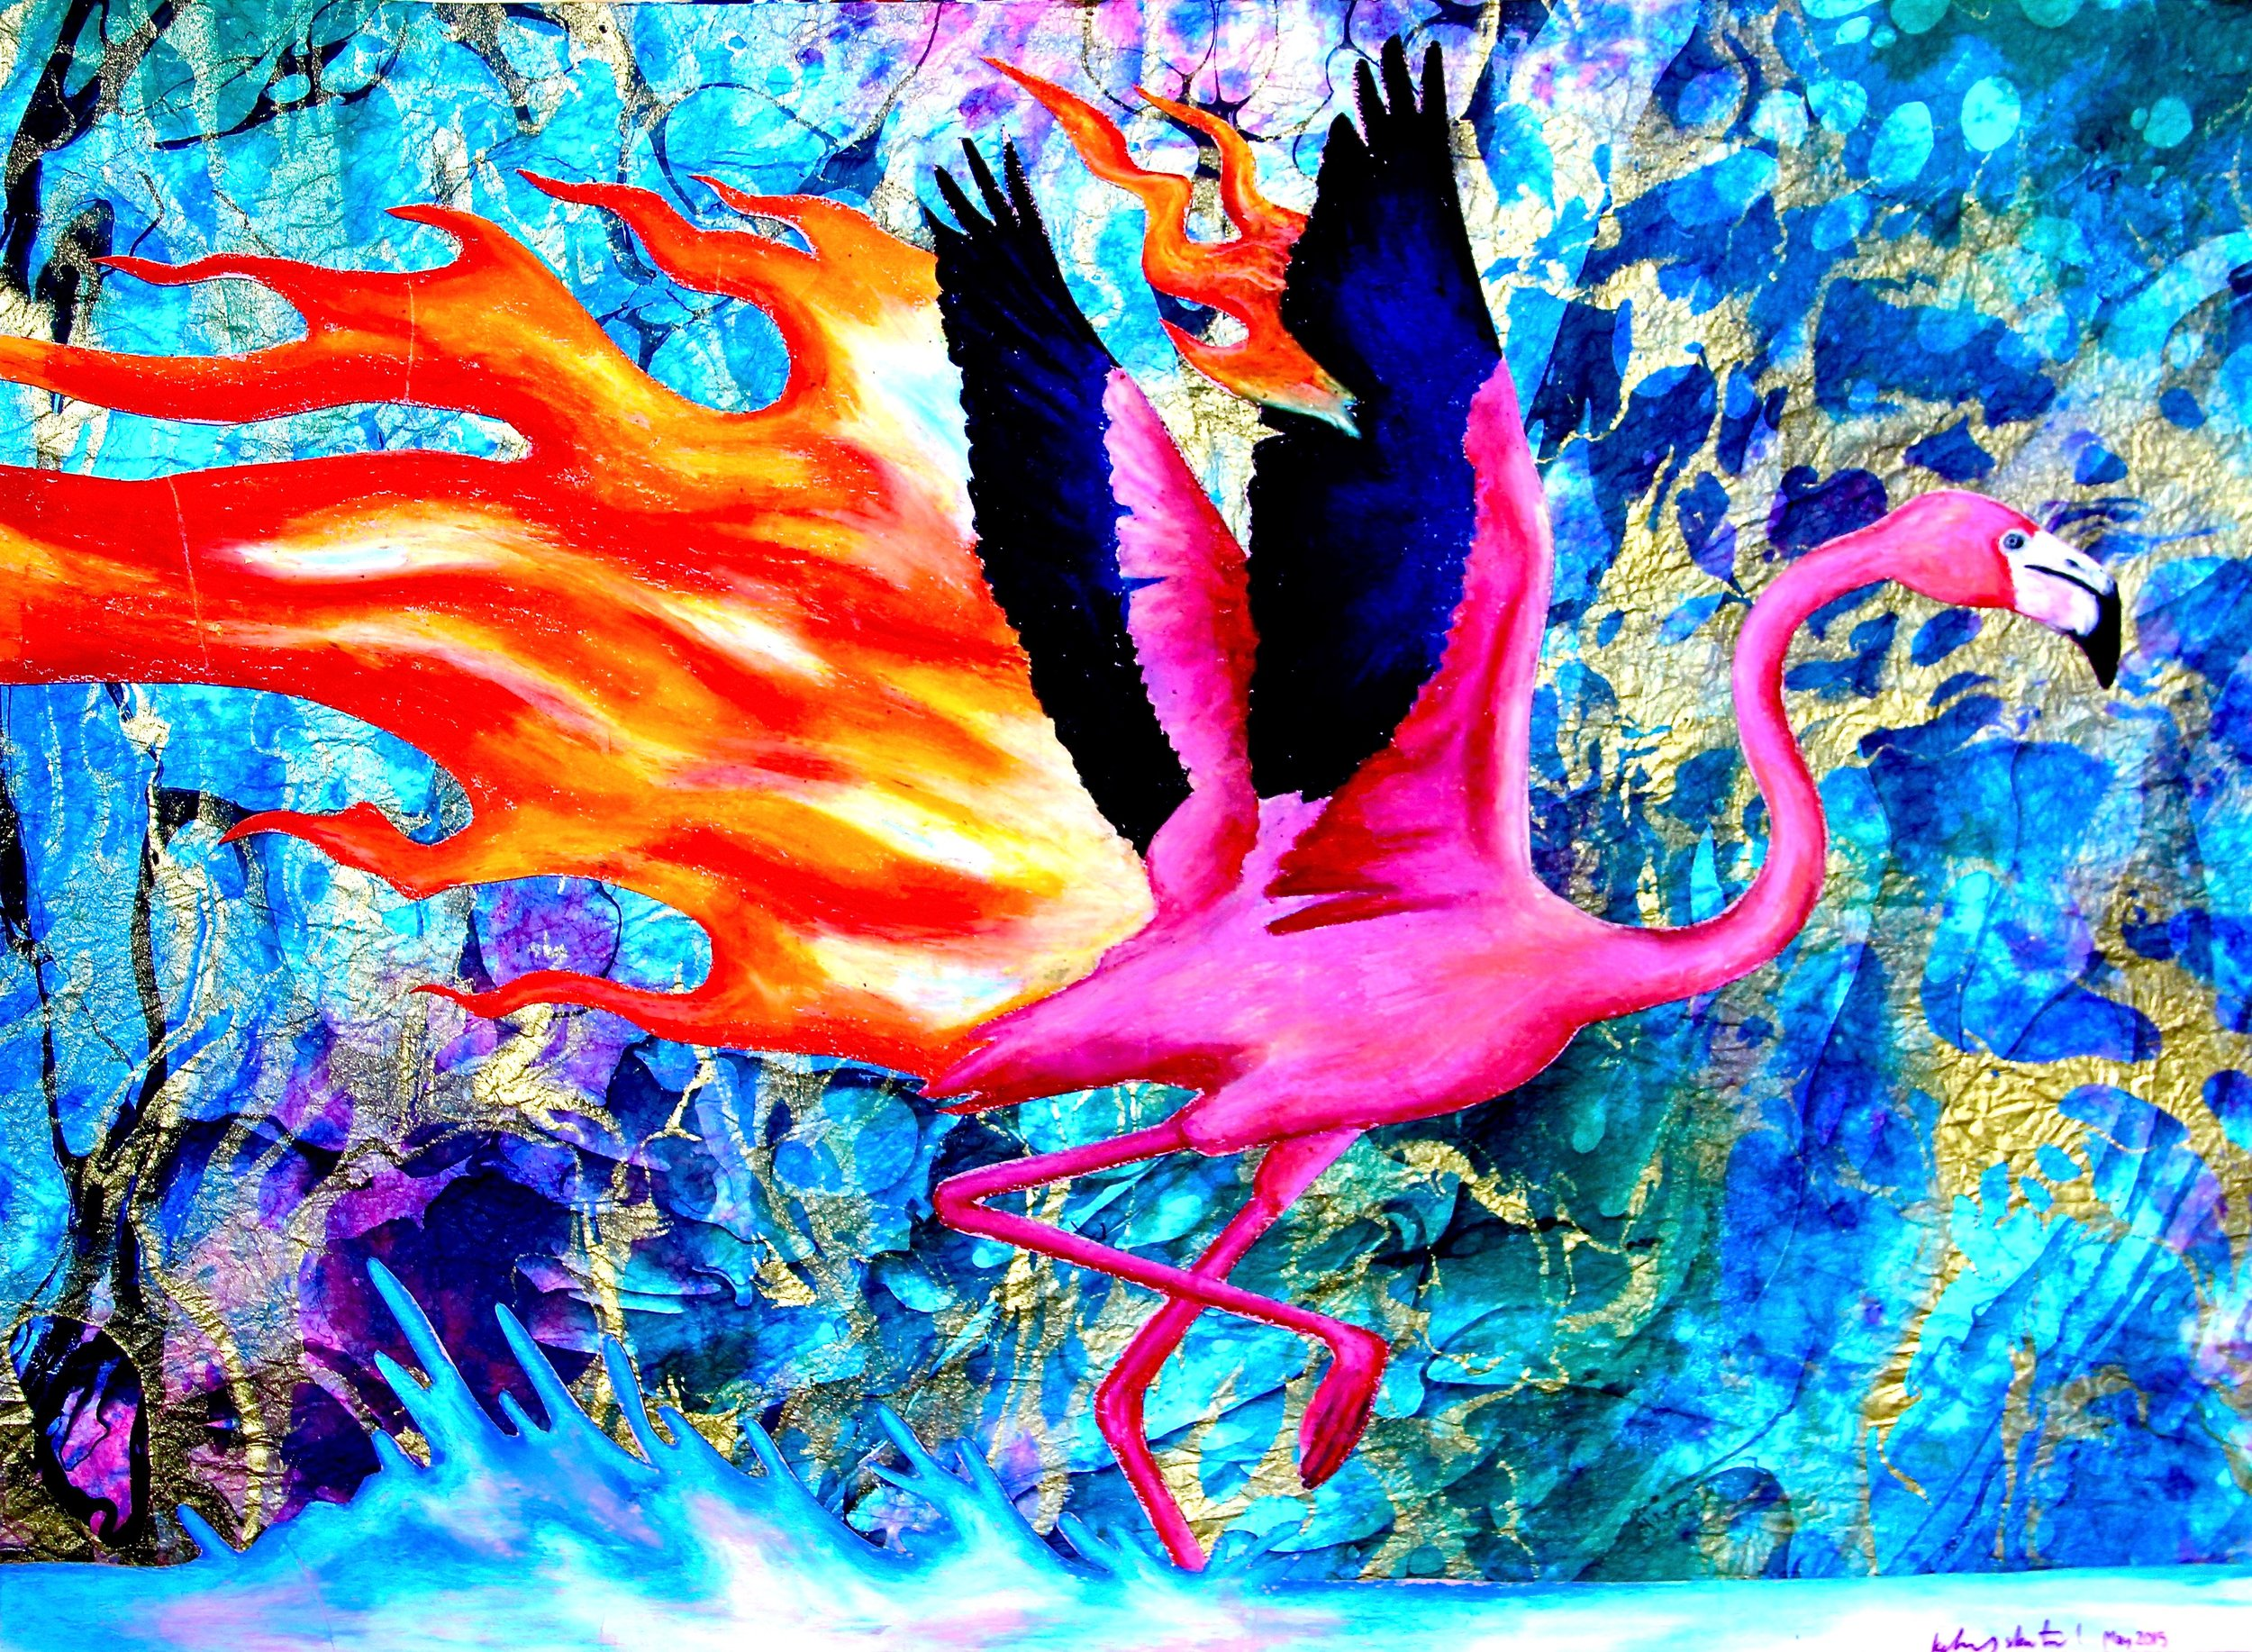 Flaming-o 2014, oil pastels & craft paper